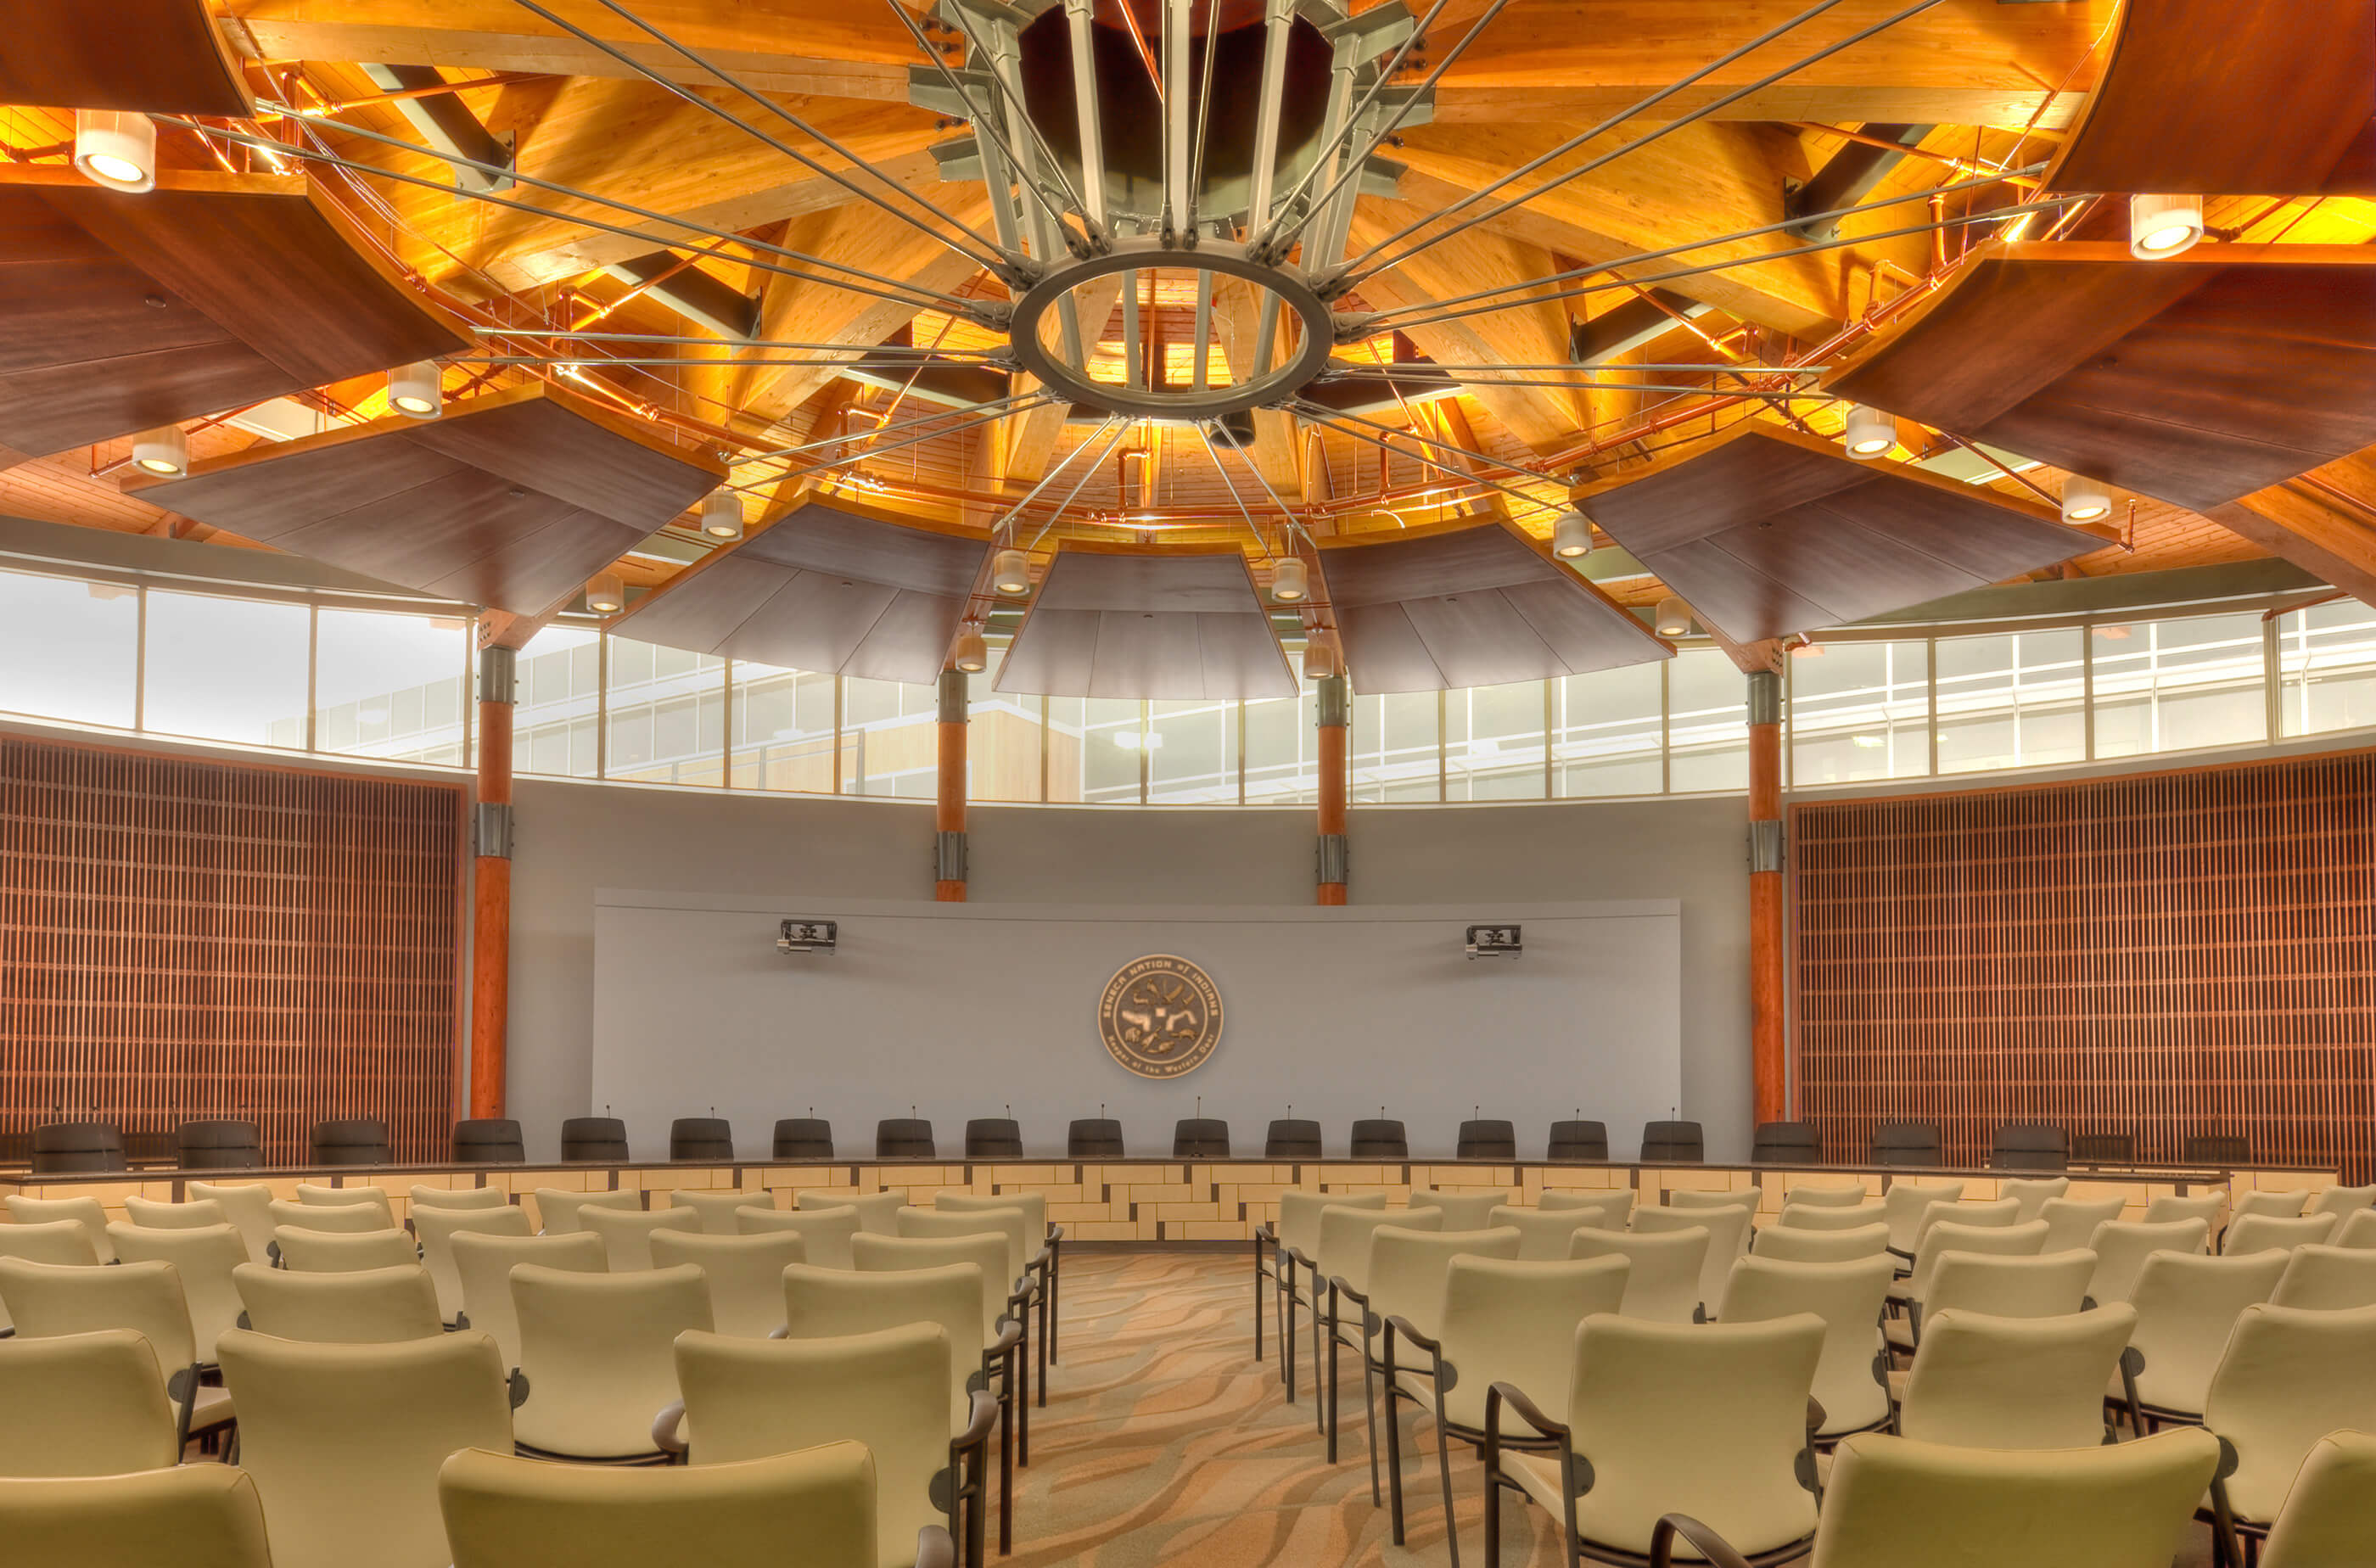 Indigenous traditions in North America emphasize long-range resilience; engineered timber is helping realize those principles